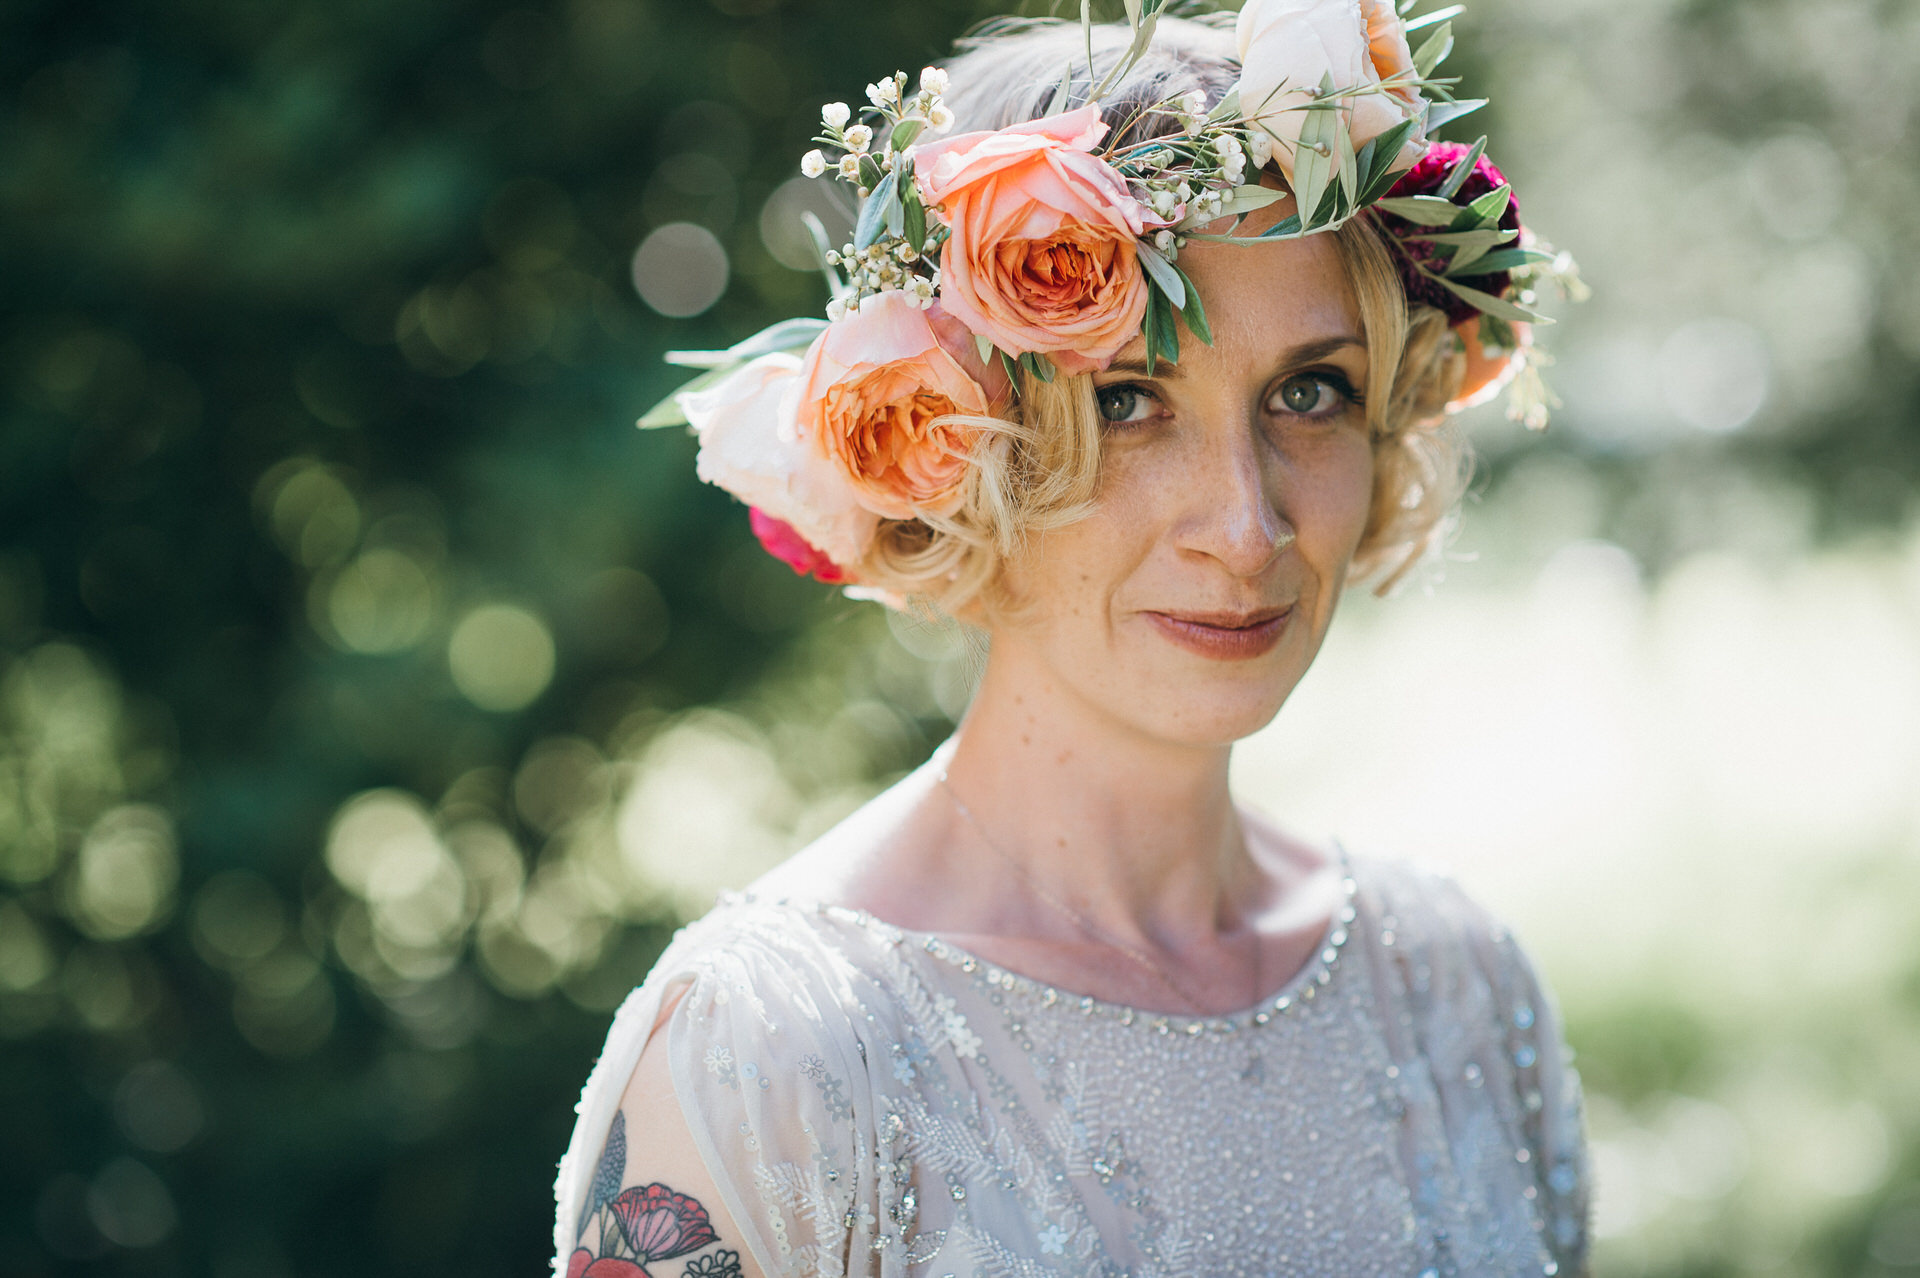 Amazing wedding flower crown